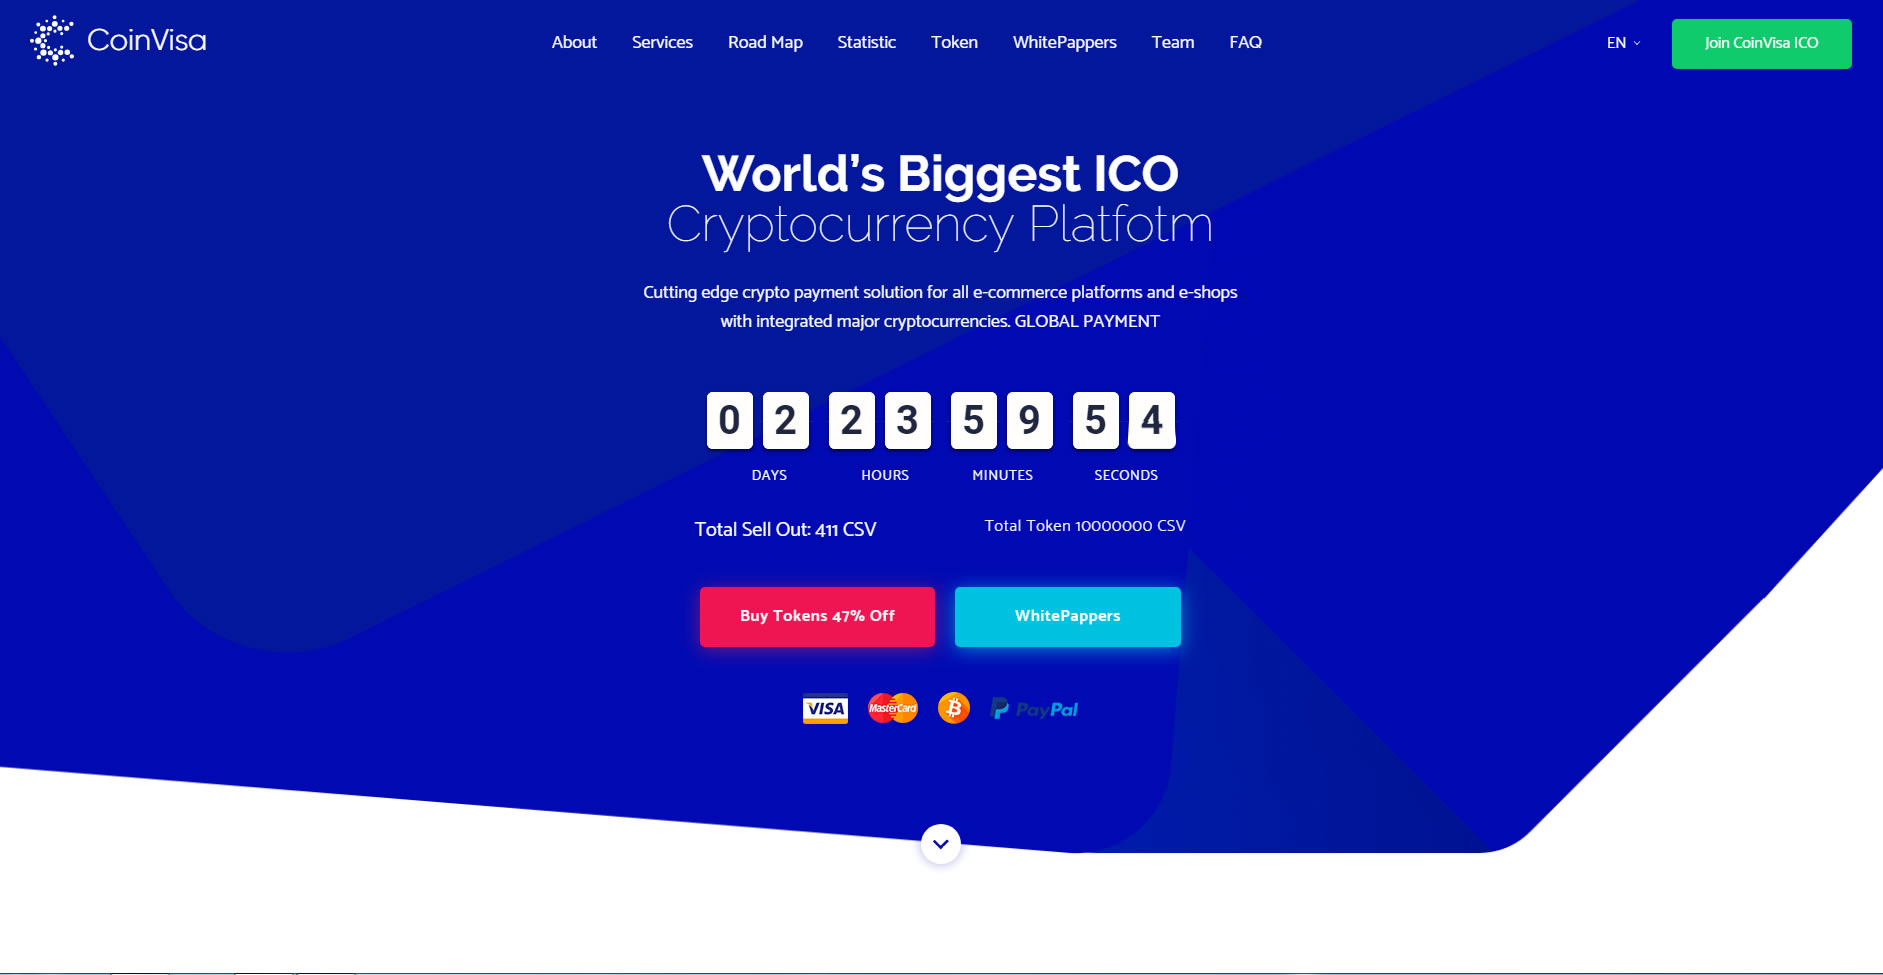 Readymade ico Script Buy token,  Refer 3 level, Wallet Setting